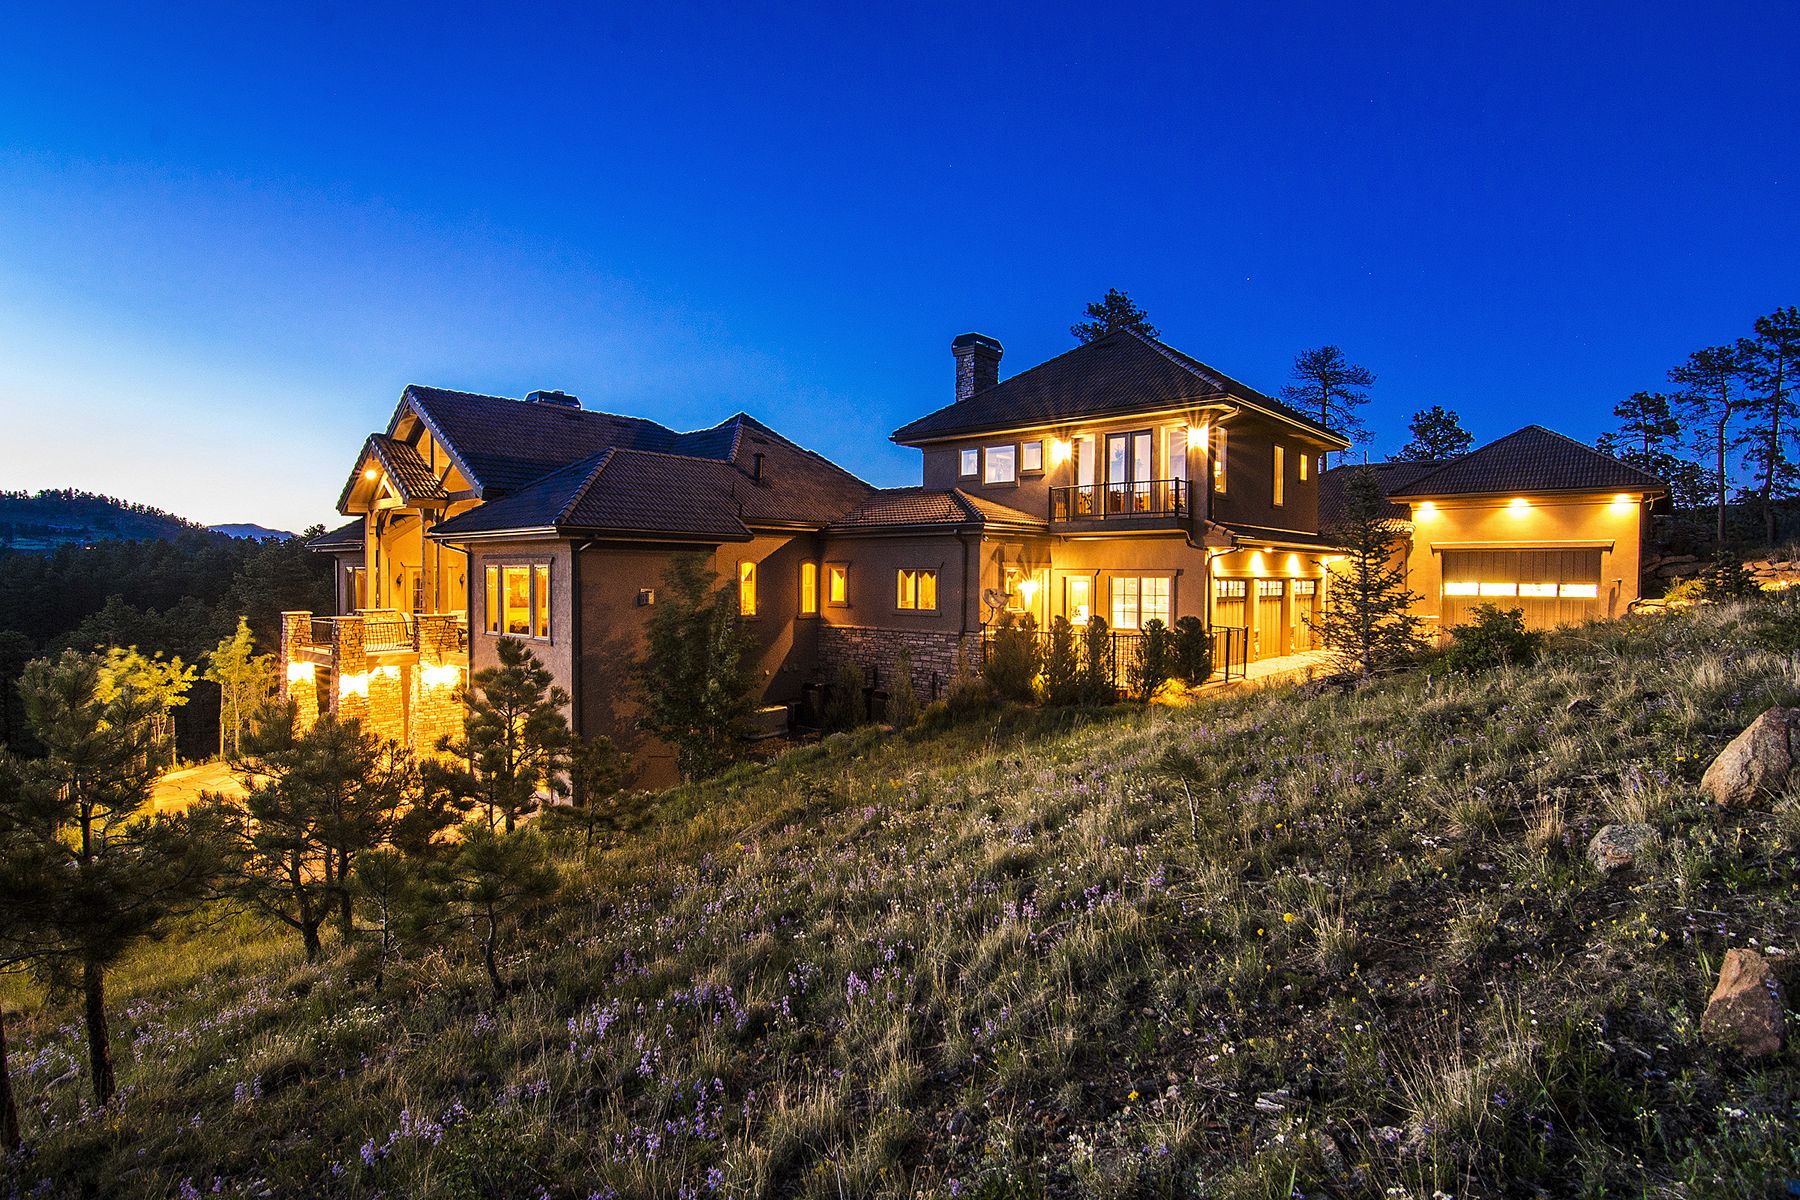 Single Family Home for Active at Custom Home With Incredible Views 1325 Silver Rock Lane Evergreen, Colorado 80439 United States